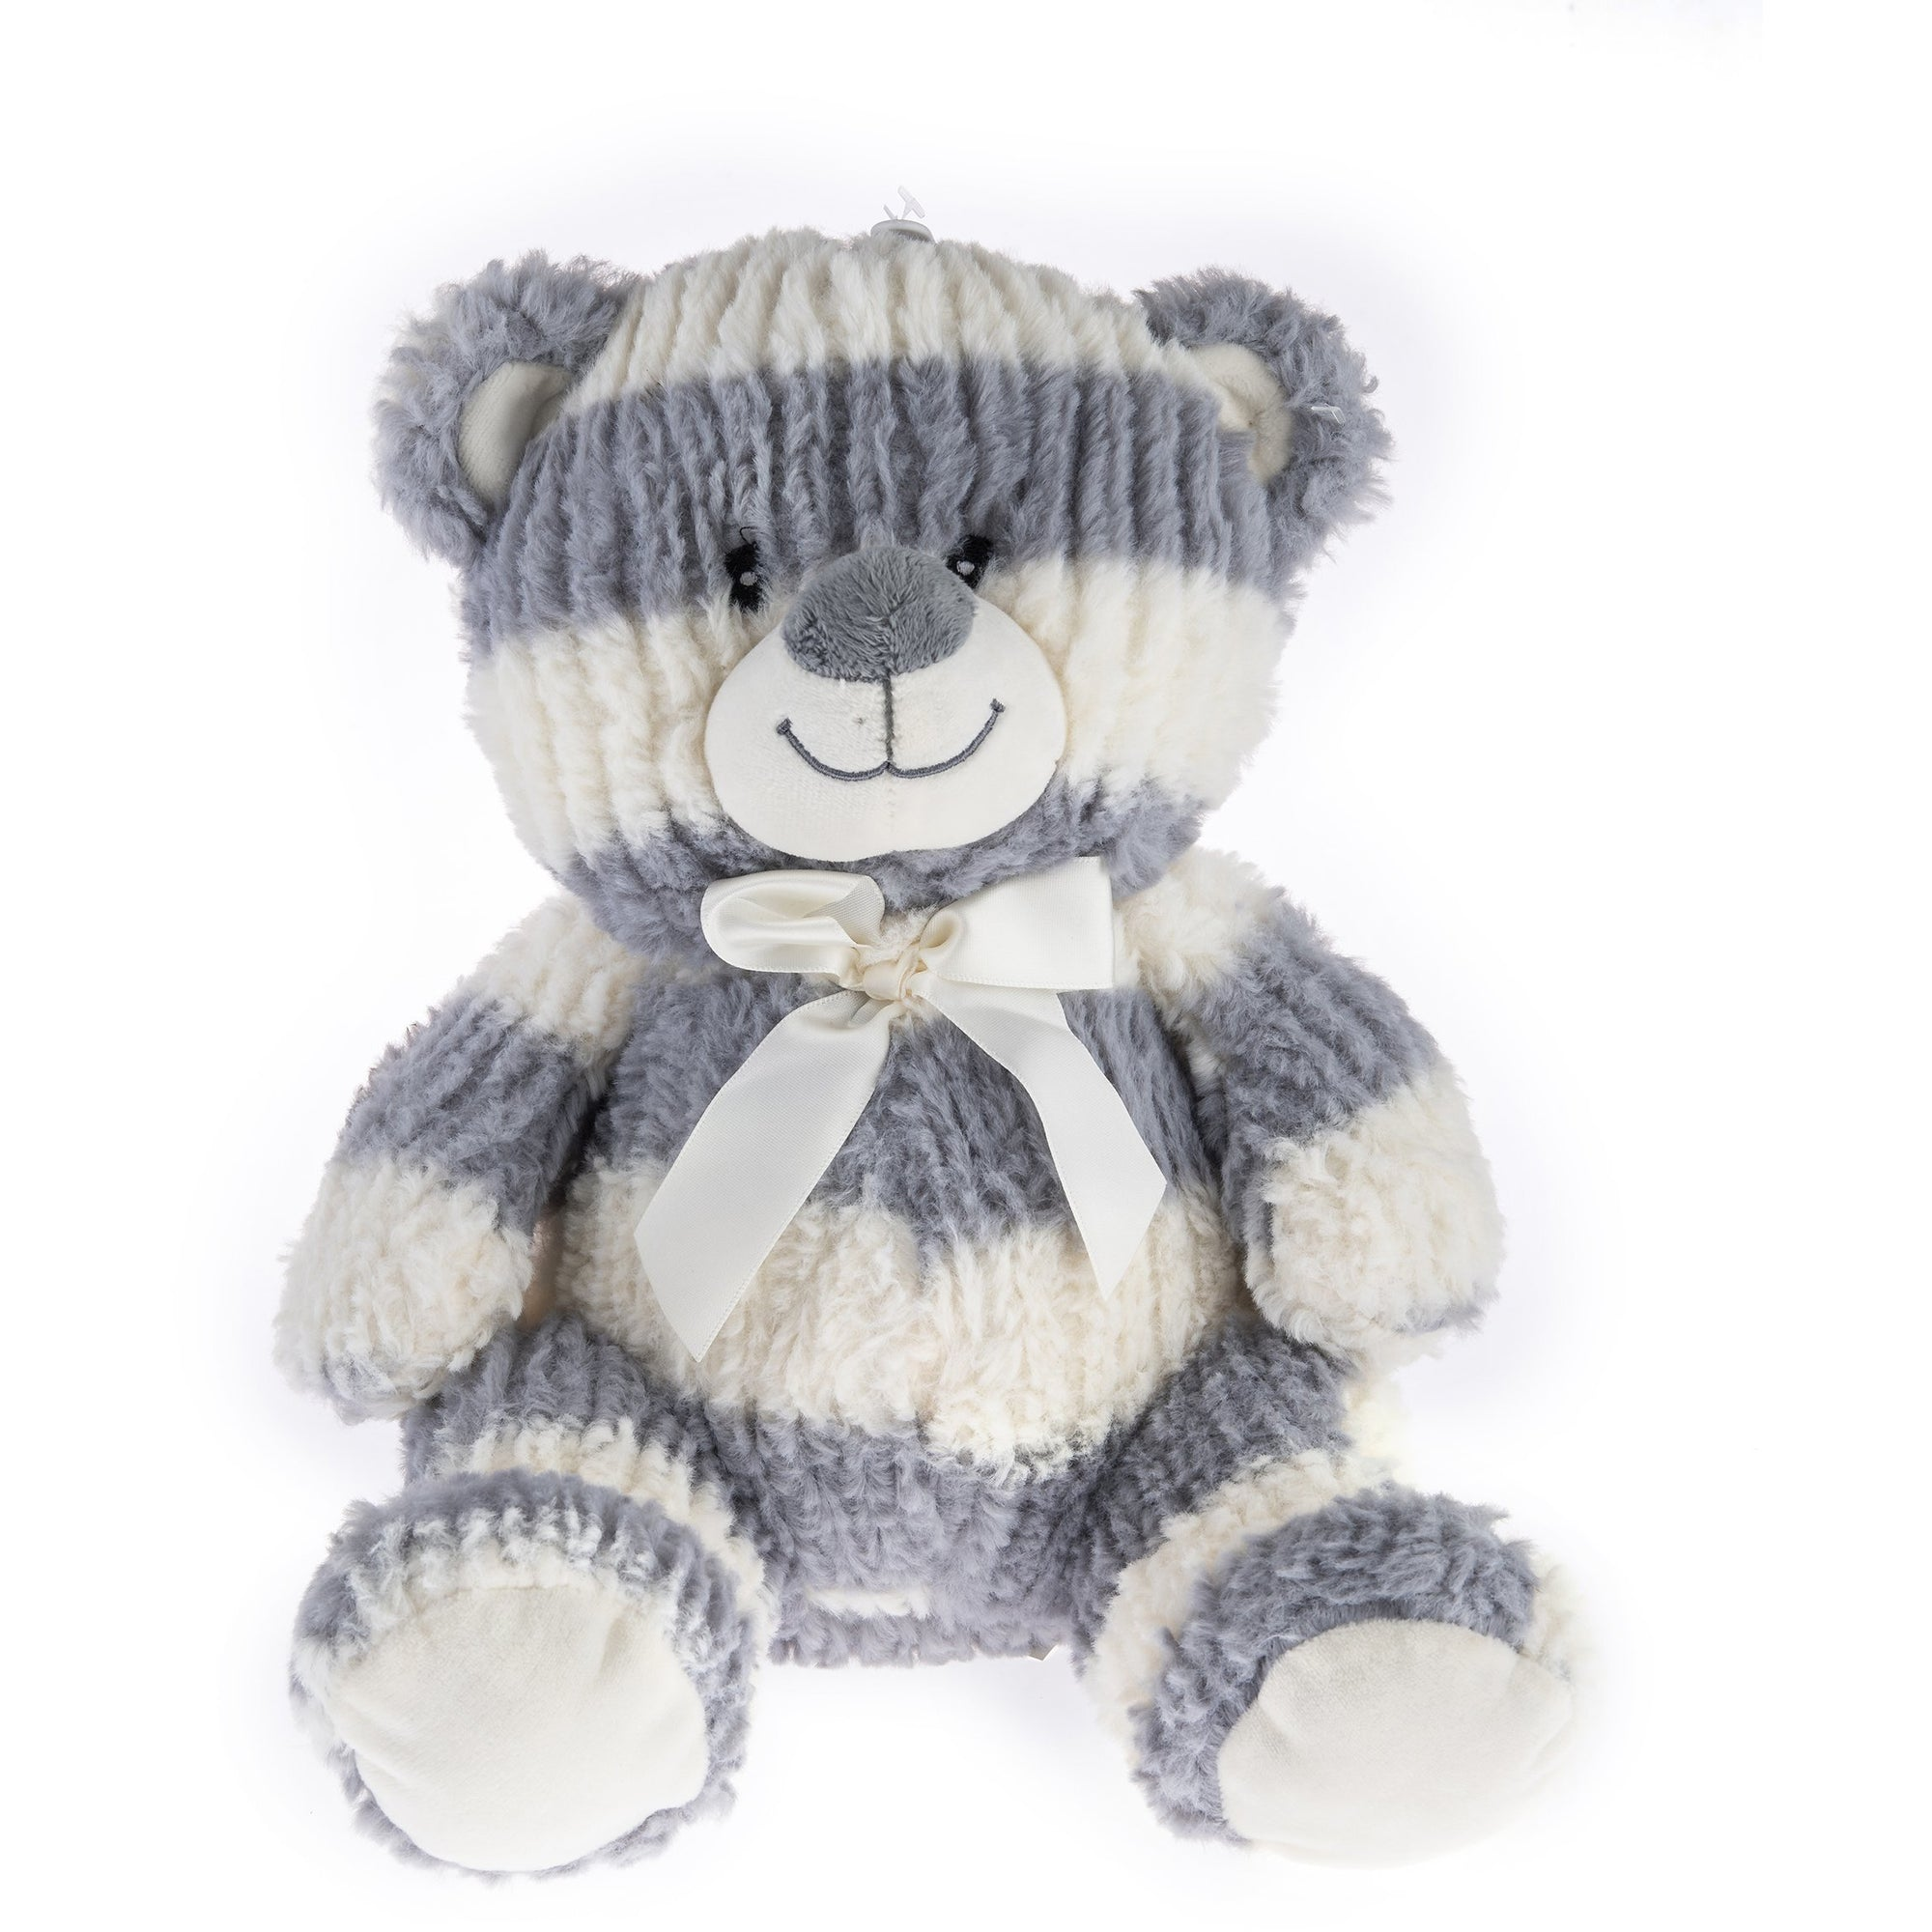 Stripped Teddy Bear